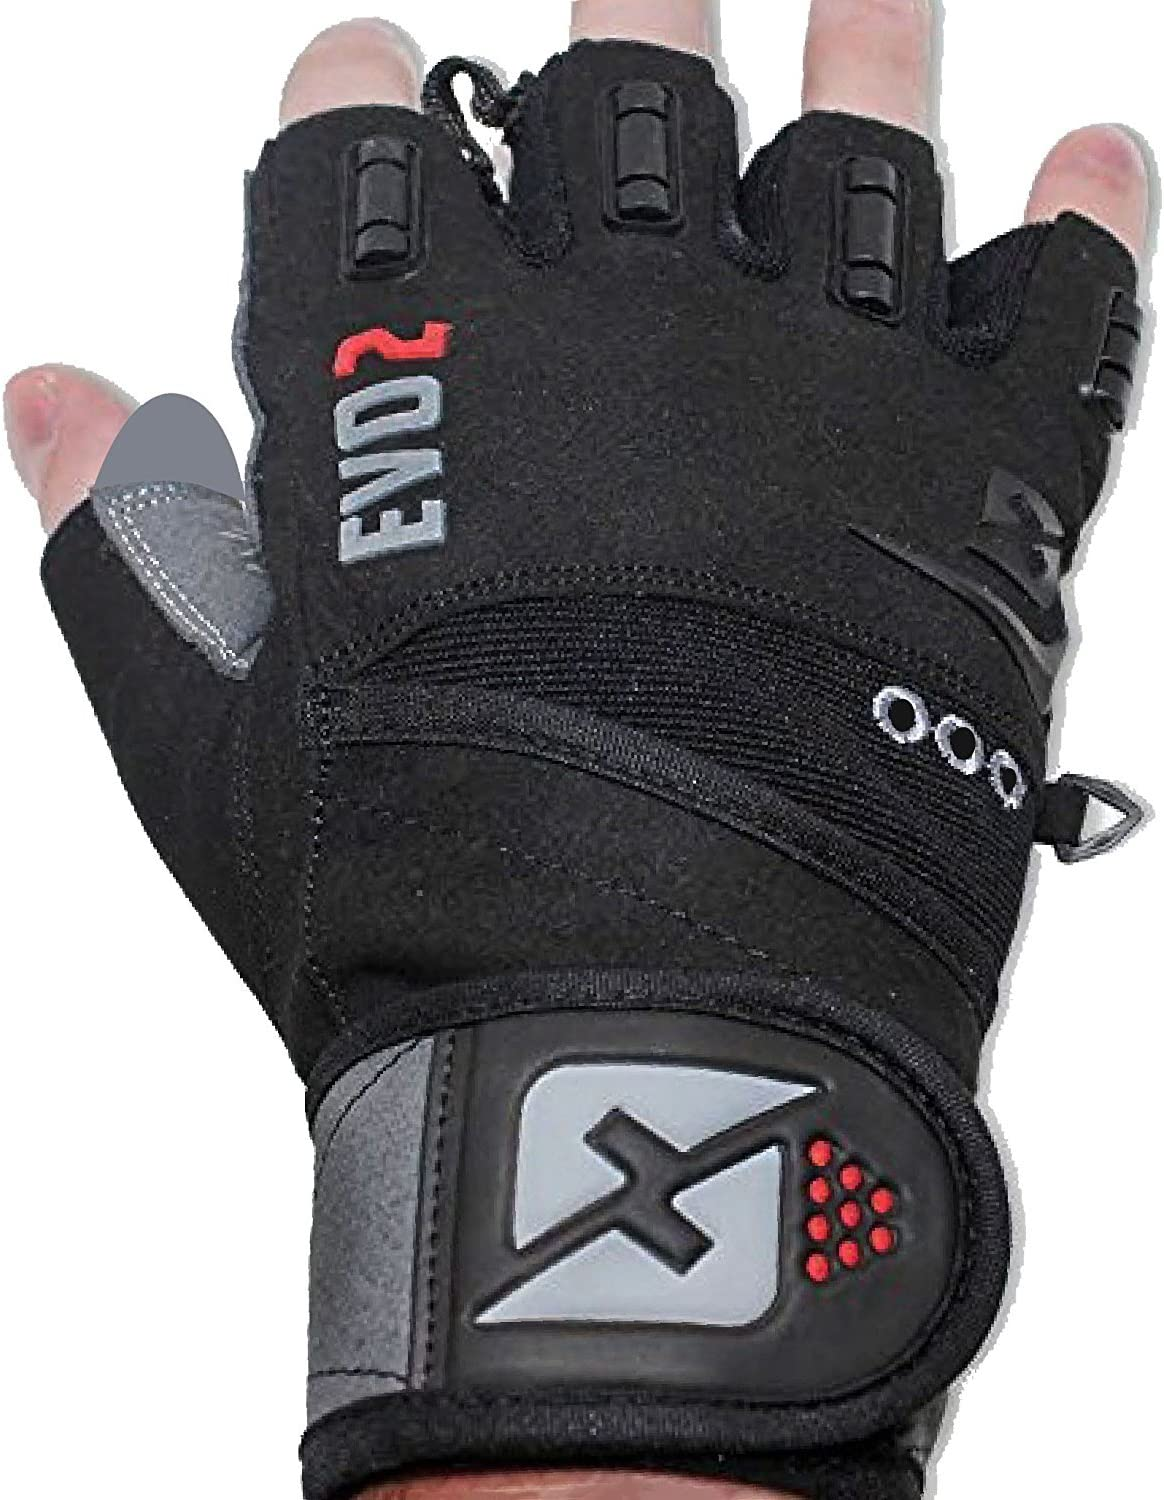 Skott Evo 2 Weight Lifting Gloves with Integrated Wrist Wrap Support-Double Stitching for Extra Durability-Get Ripped with The Best Body Building Fitness and Exercise Accessories